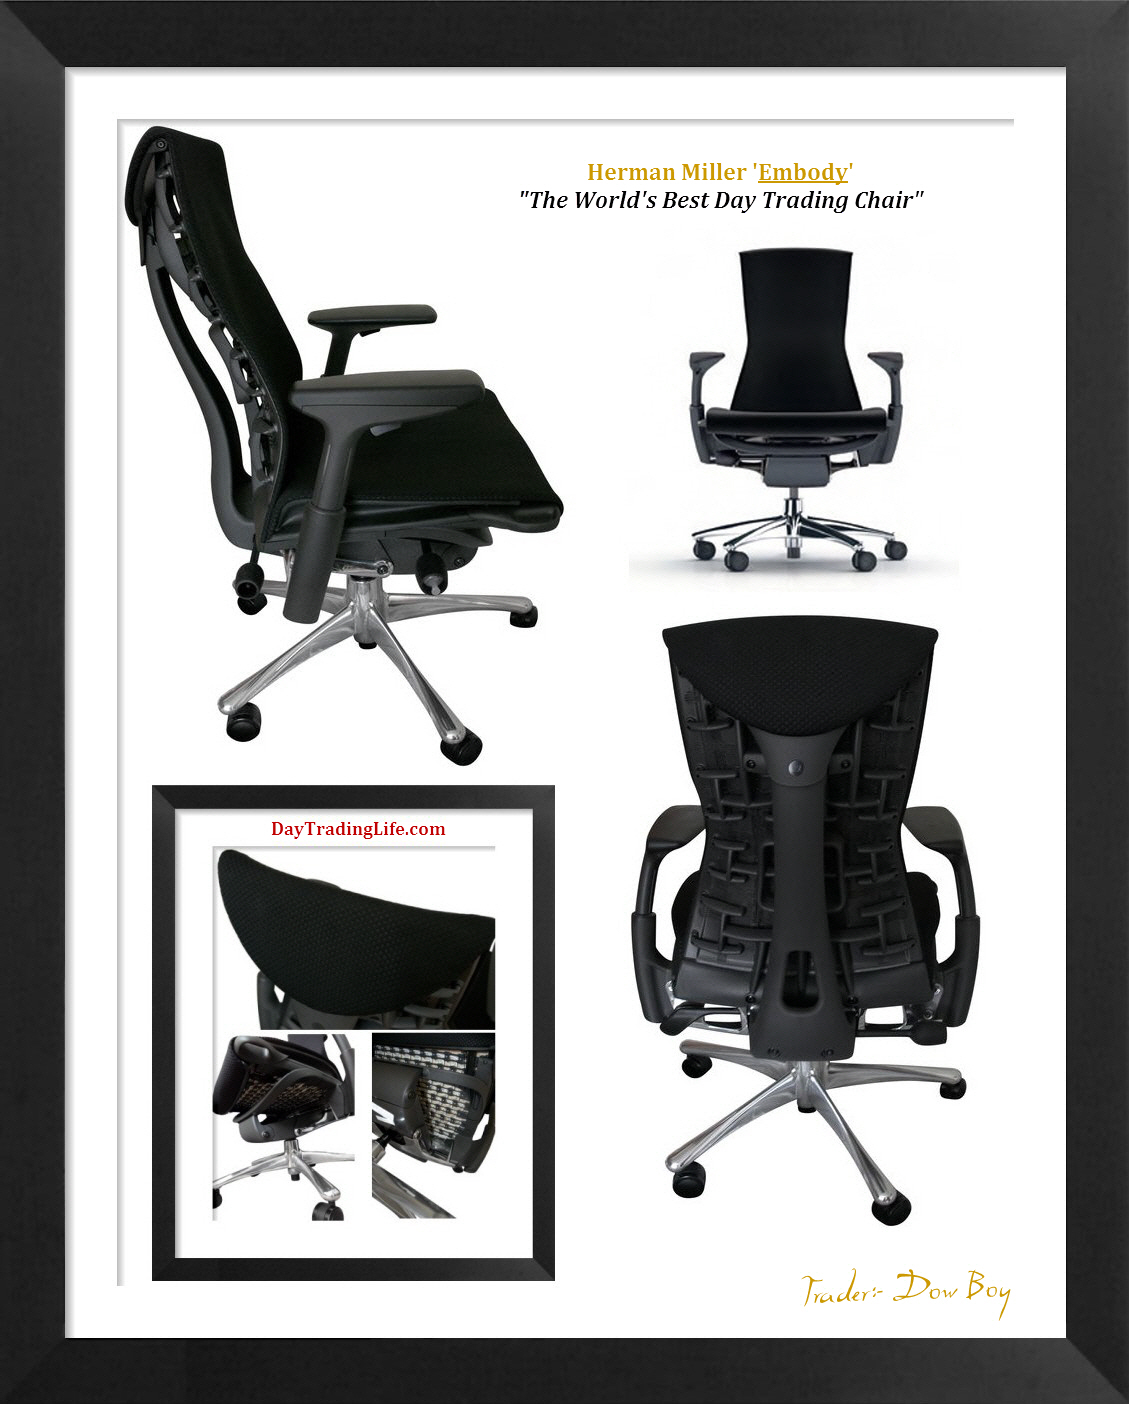 worlds-best-day-trading-chair-lg.jpg